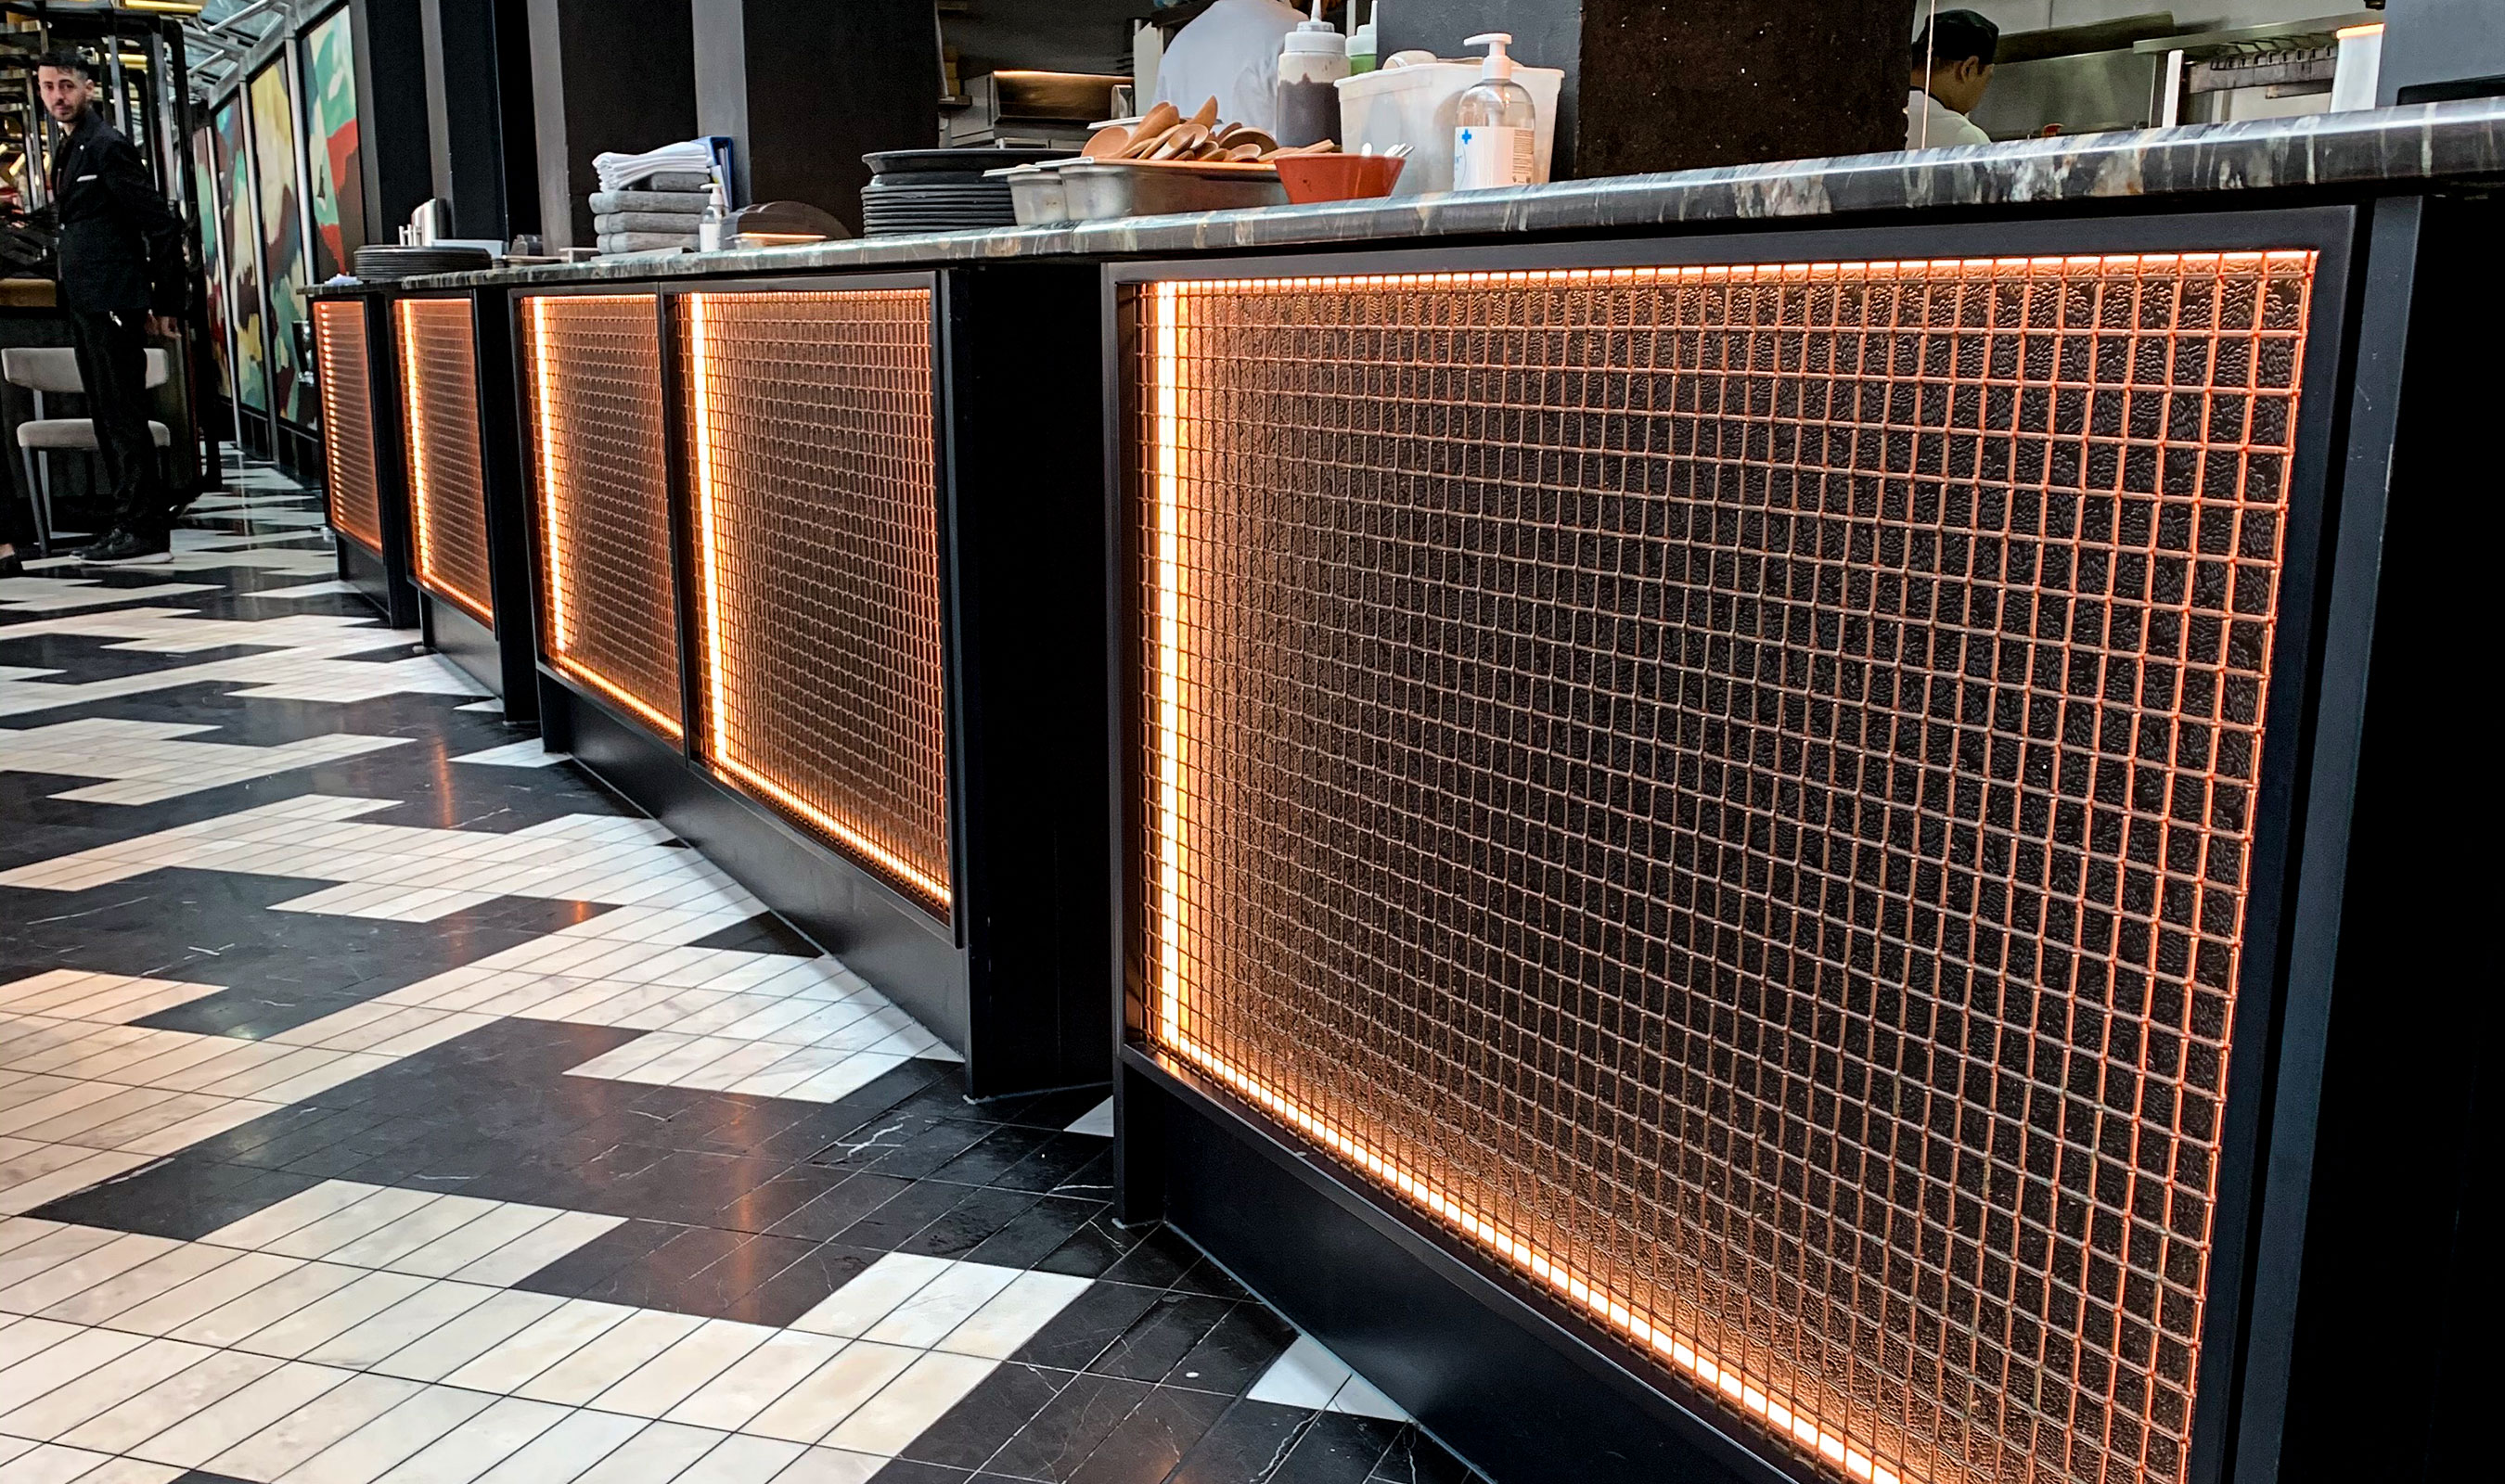 SUSHISAMBA utilizes Banker Wire's L-81 in copper to clad counters near the kitchen.